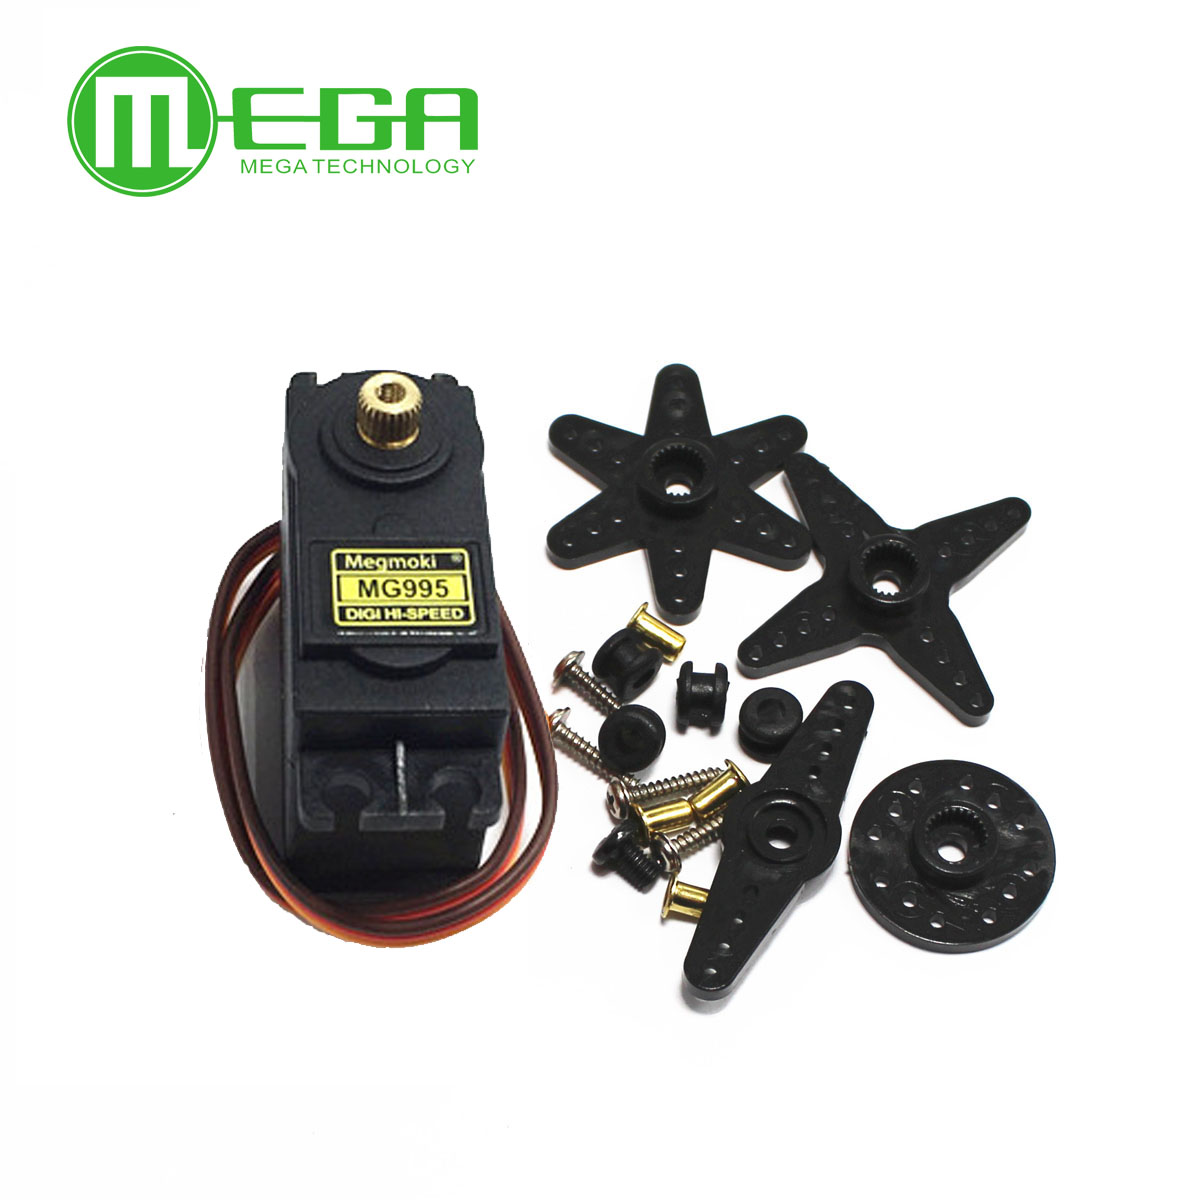 Image 2 - 13KG 15KG Servos Digital MG995 MG996 Servo Metal Gear for Futaba JR Car RC Model Helicopter Boat-in Integrated Circuits from Electronic Components & Supplies